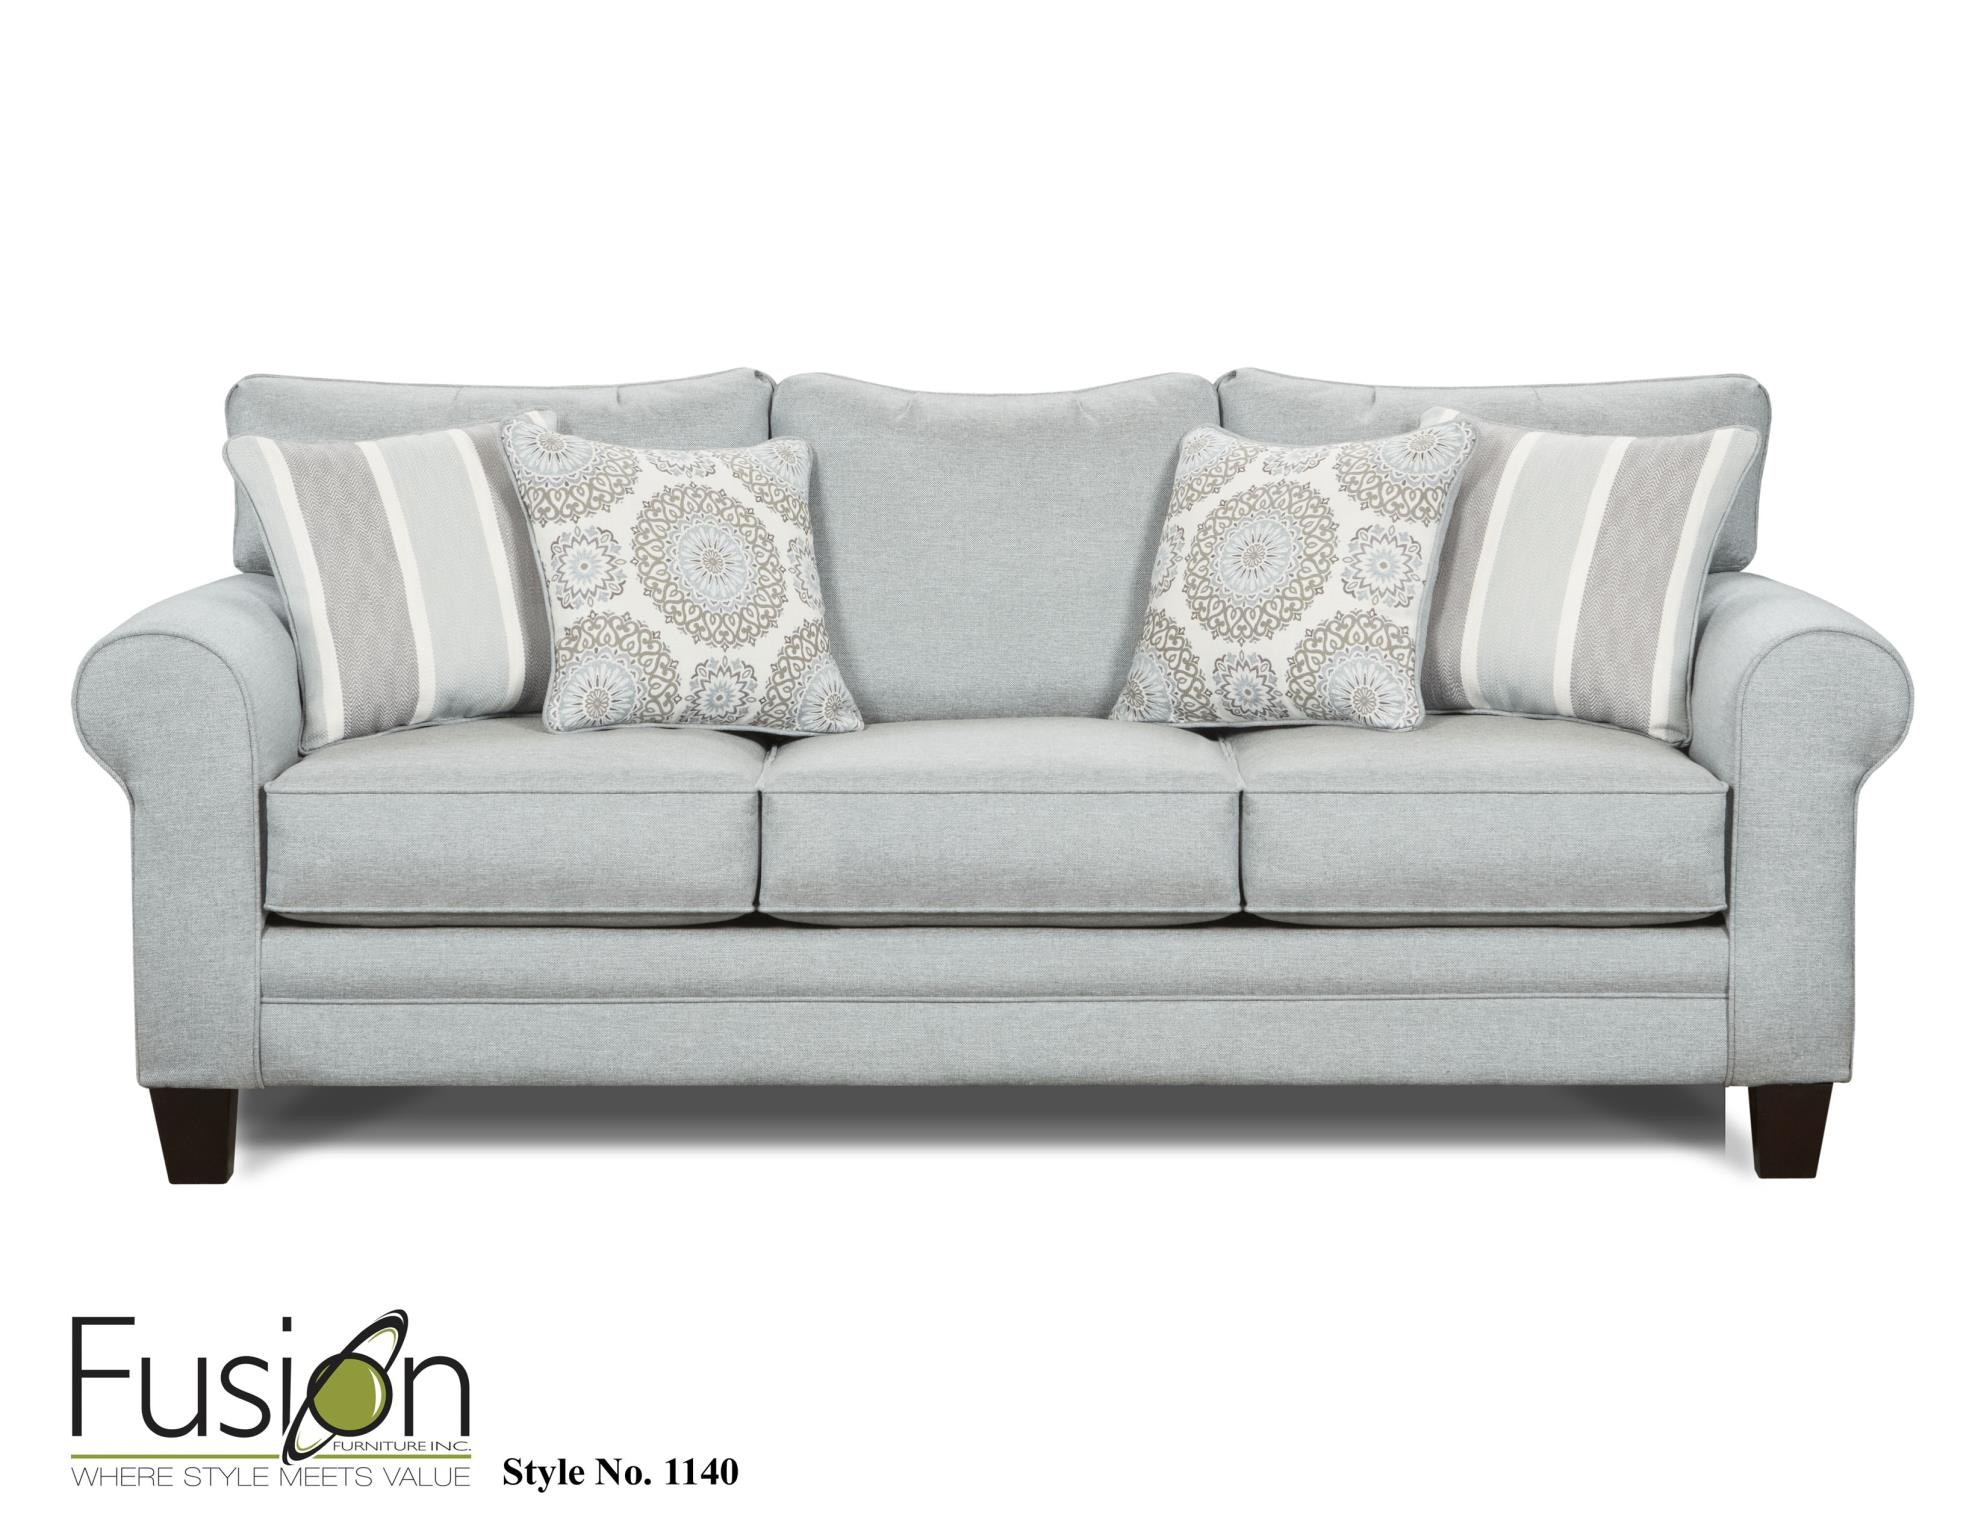 Fusion Living Room The 1140 Grande Mist B F Myers Furniture